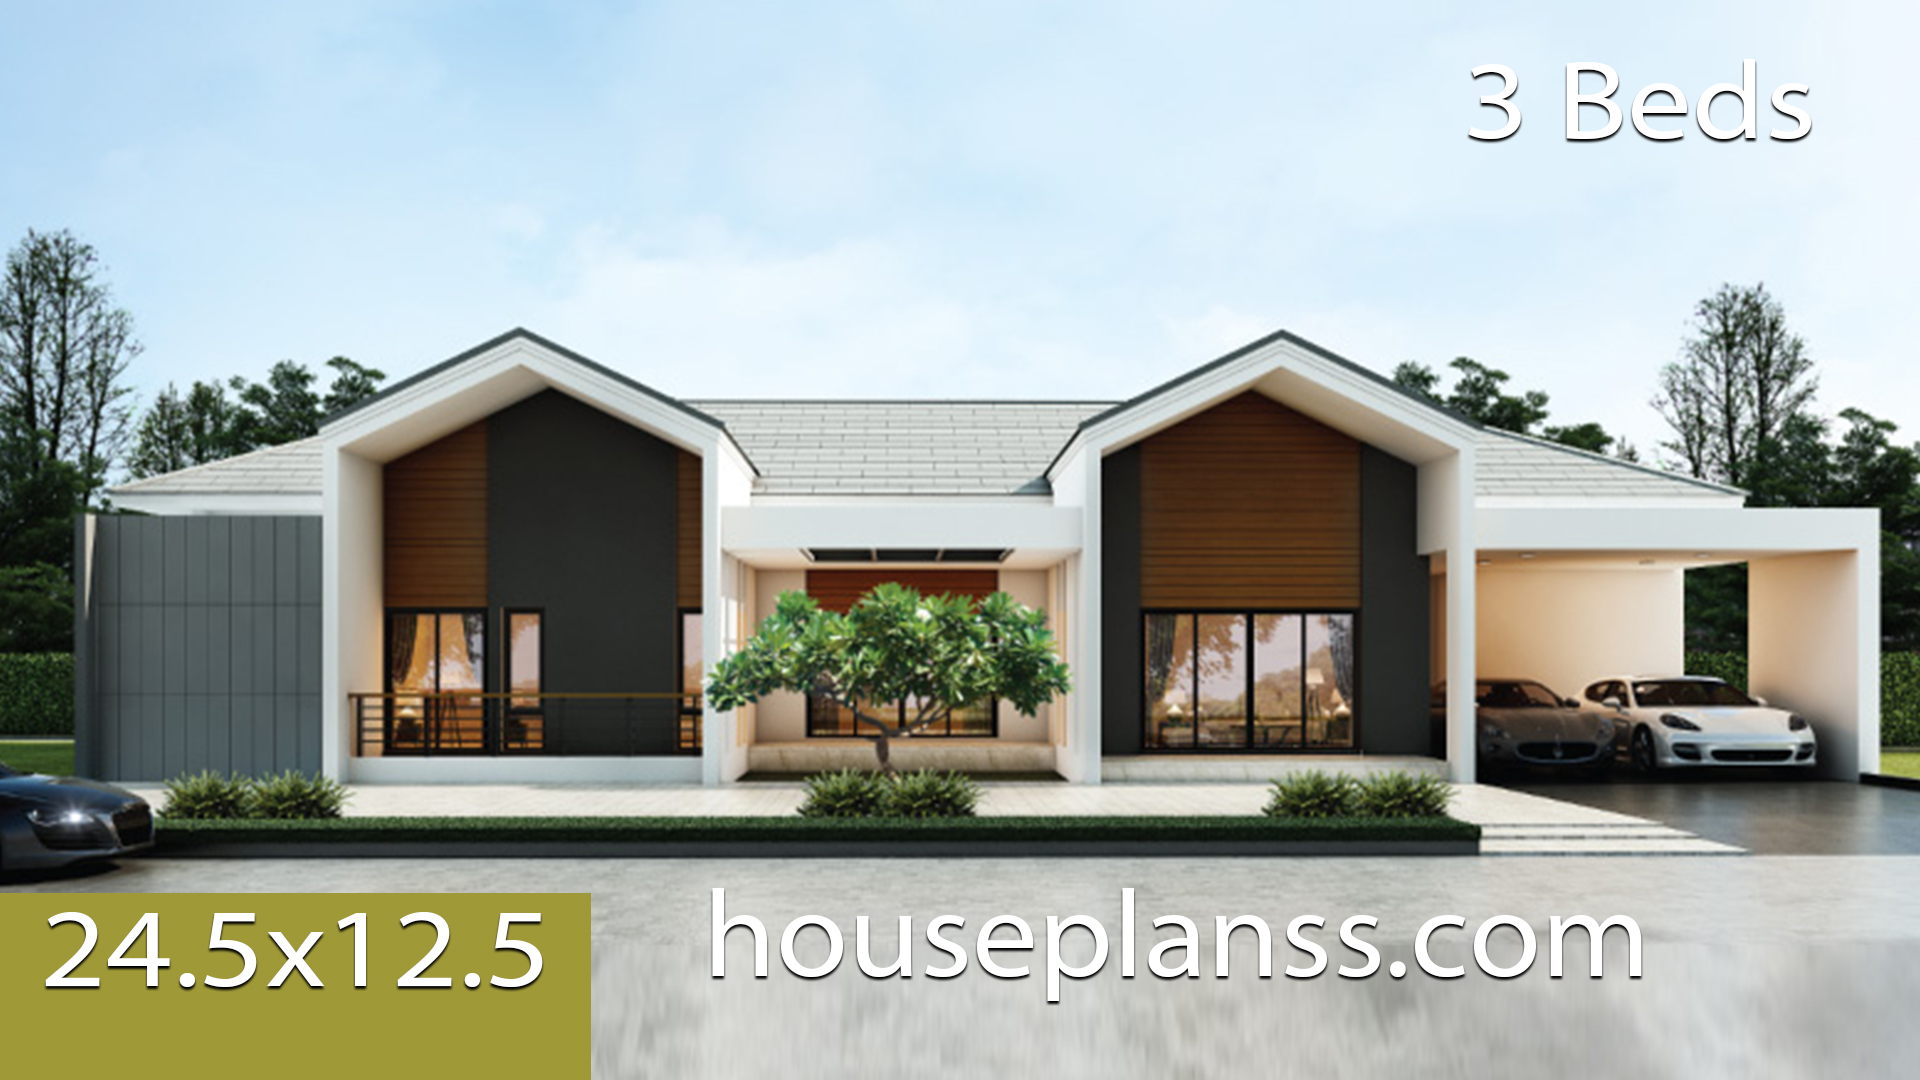 House design idea 24.5×12.5 with 3 bedrooms